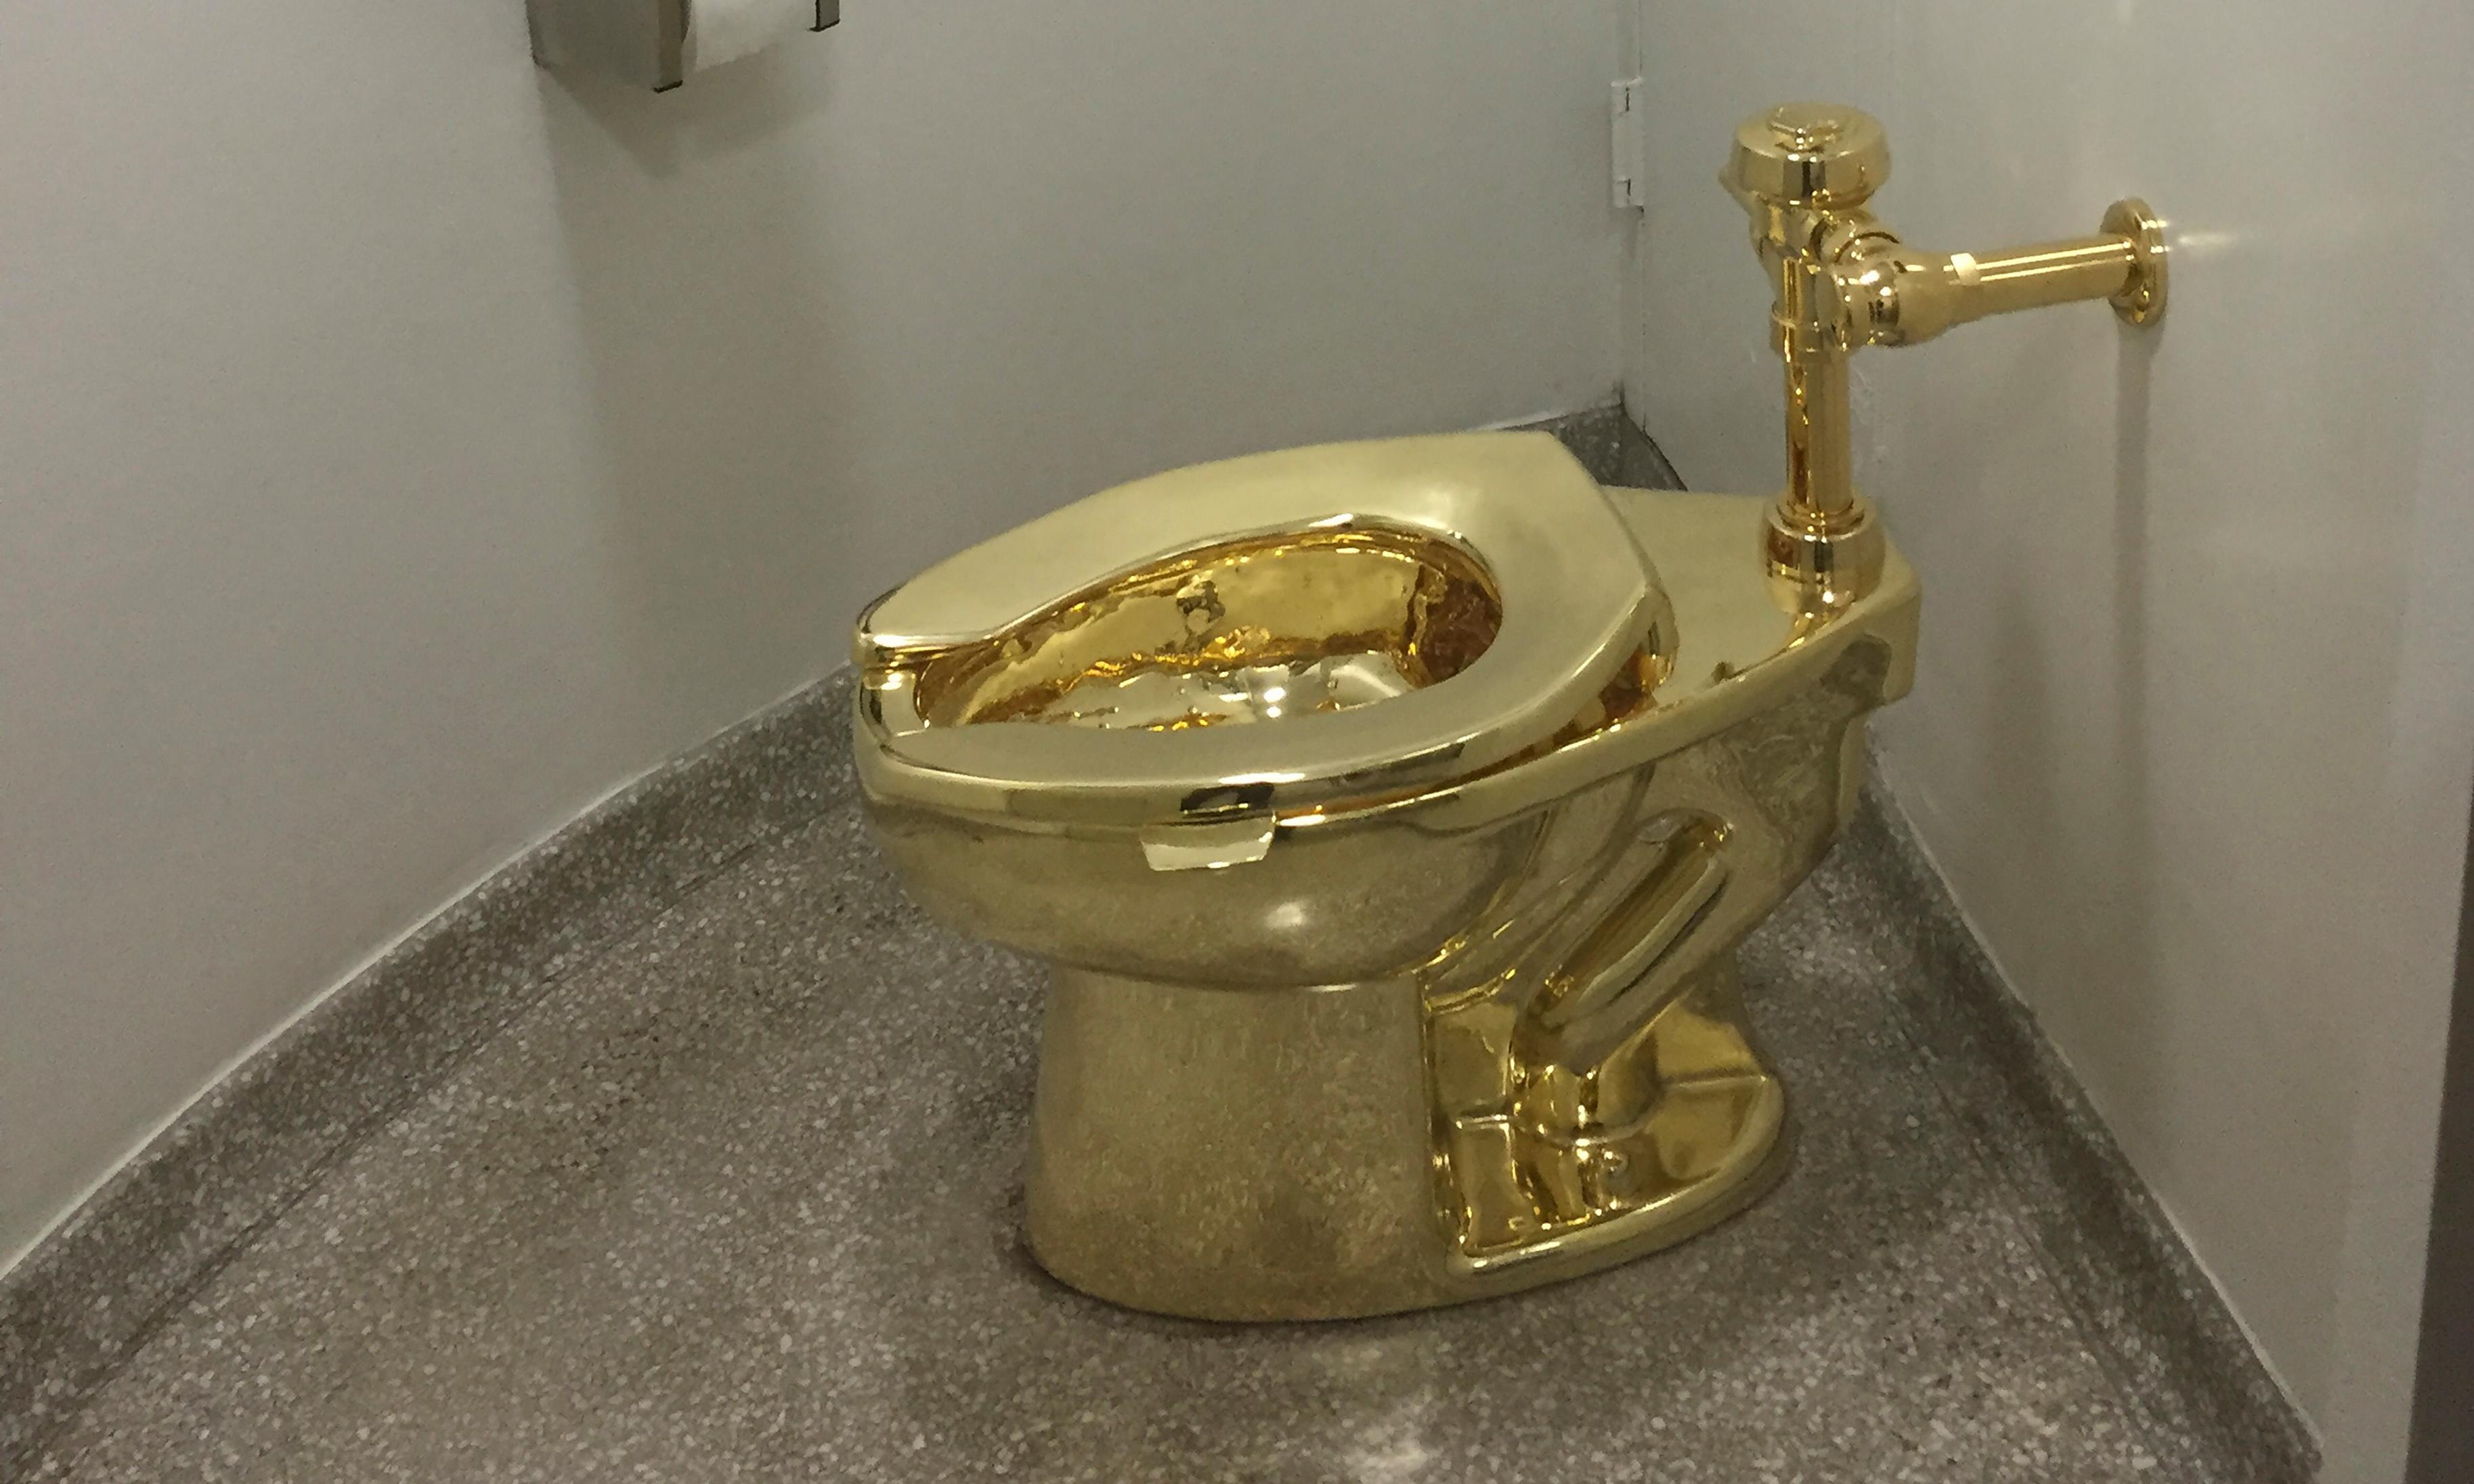 Artist pans claims he orchestrated theft of solid gold toilet